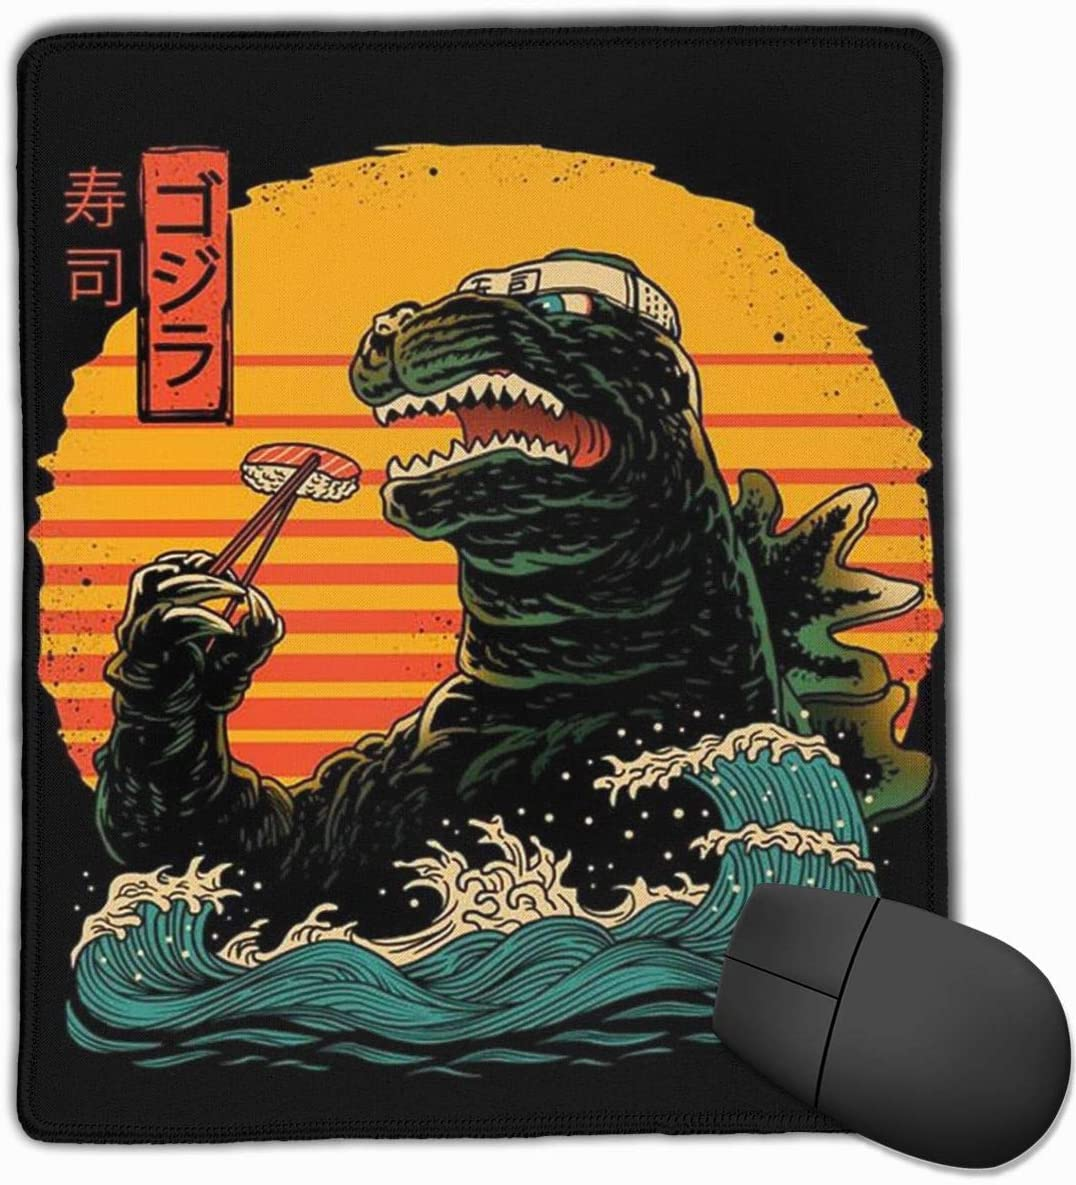 Japanese Kaiju Movie Parody Godzilla King of Sushi Mouse Pad Laptop Office Supplies Gaming Mouse Pad Fit Desktop Personal Computer Console